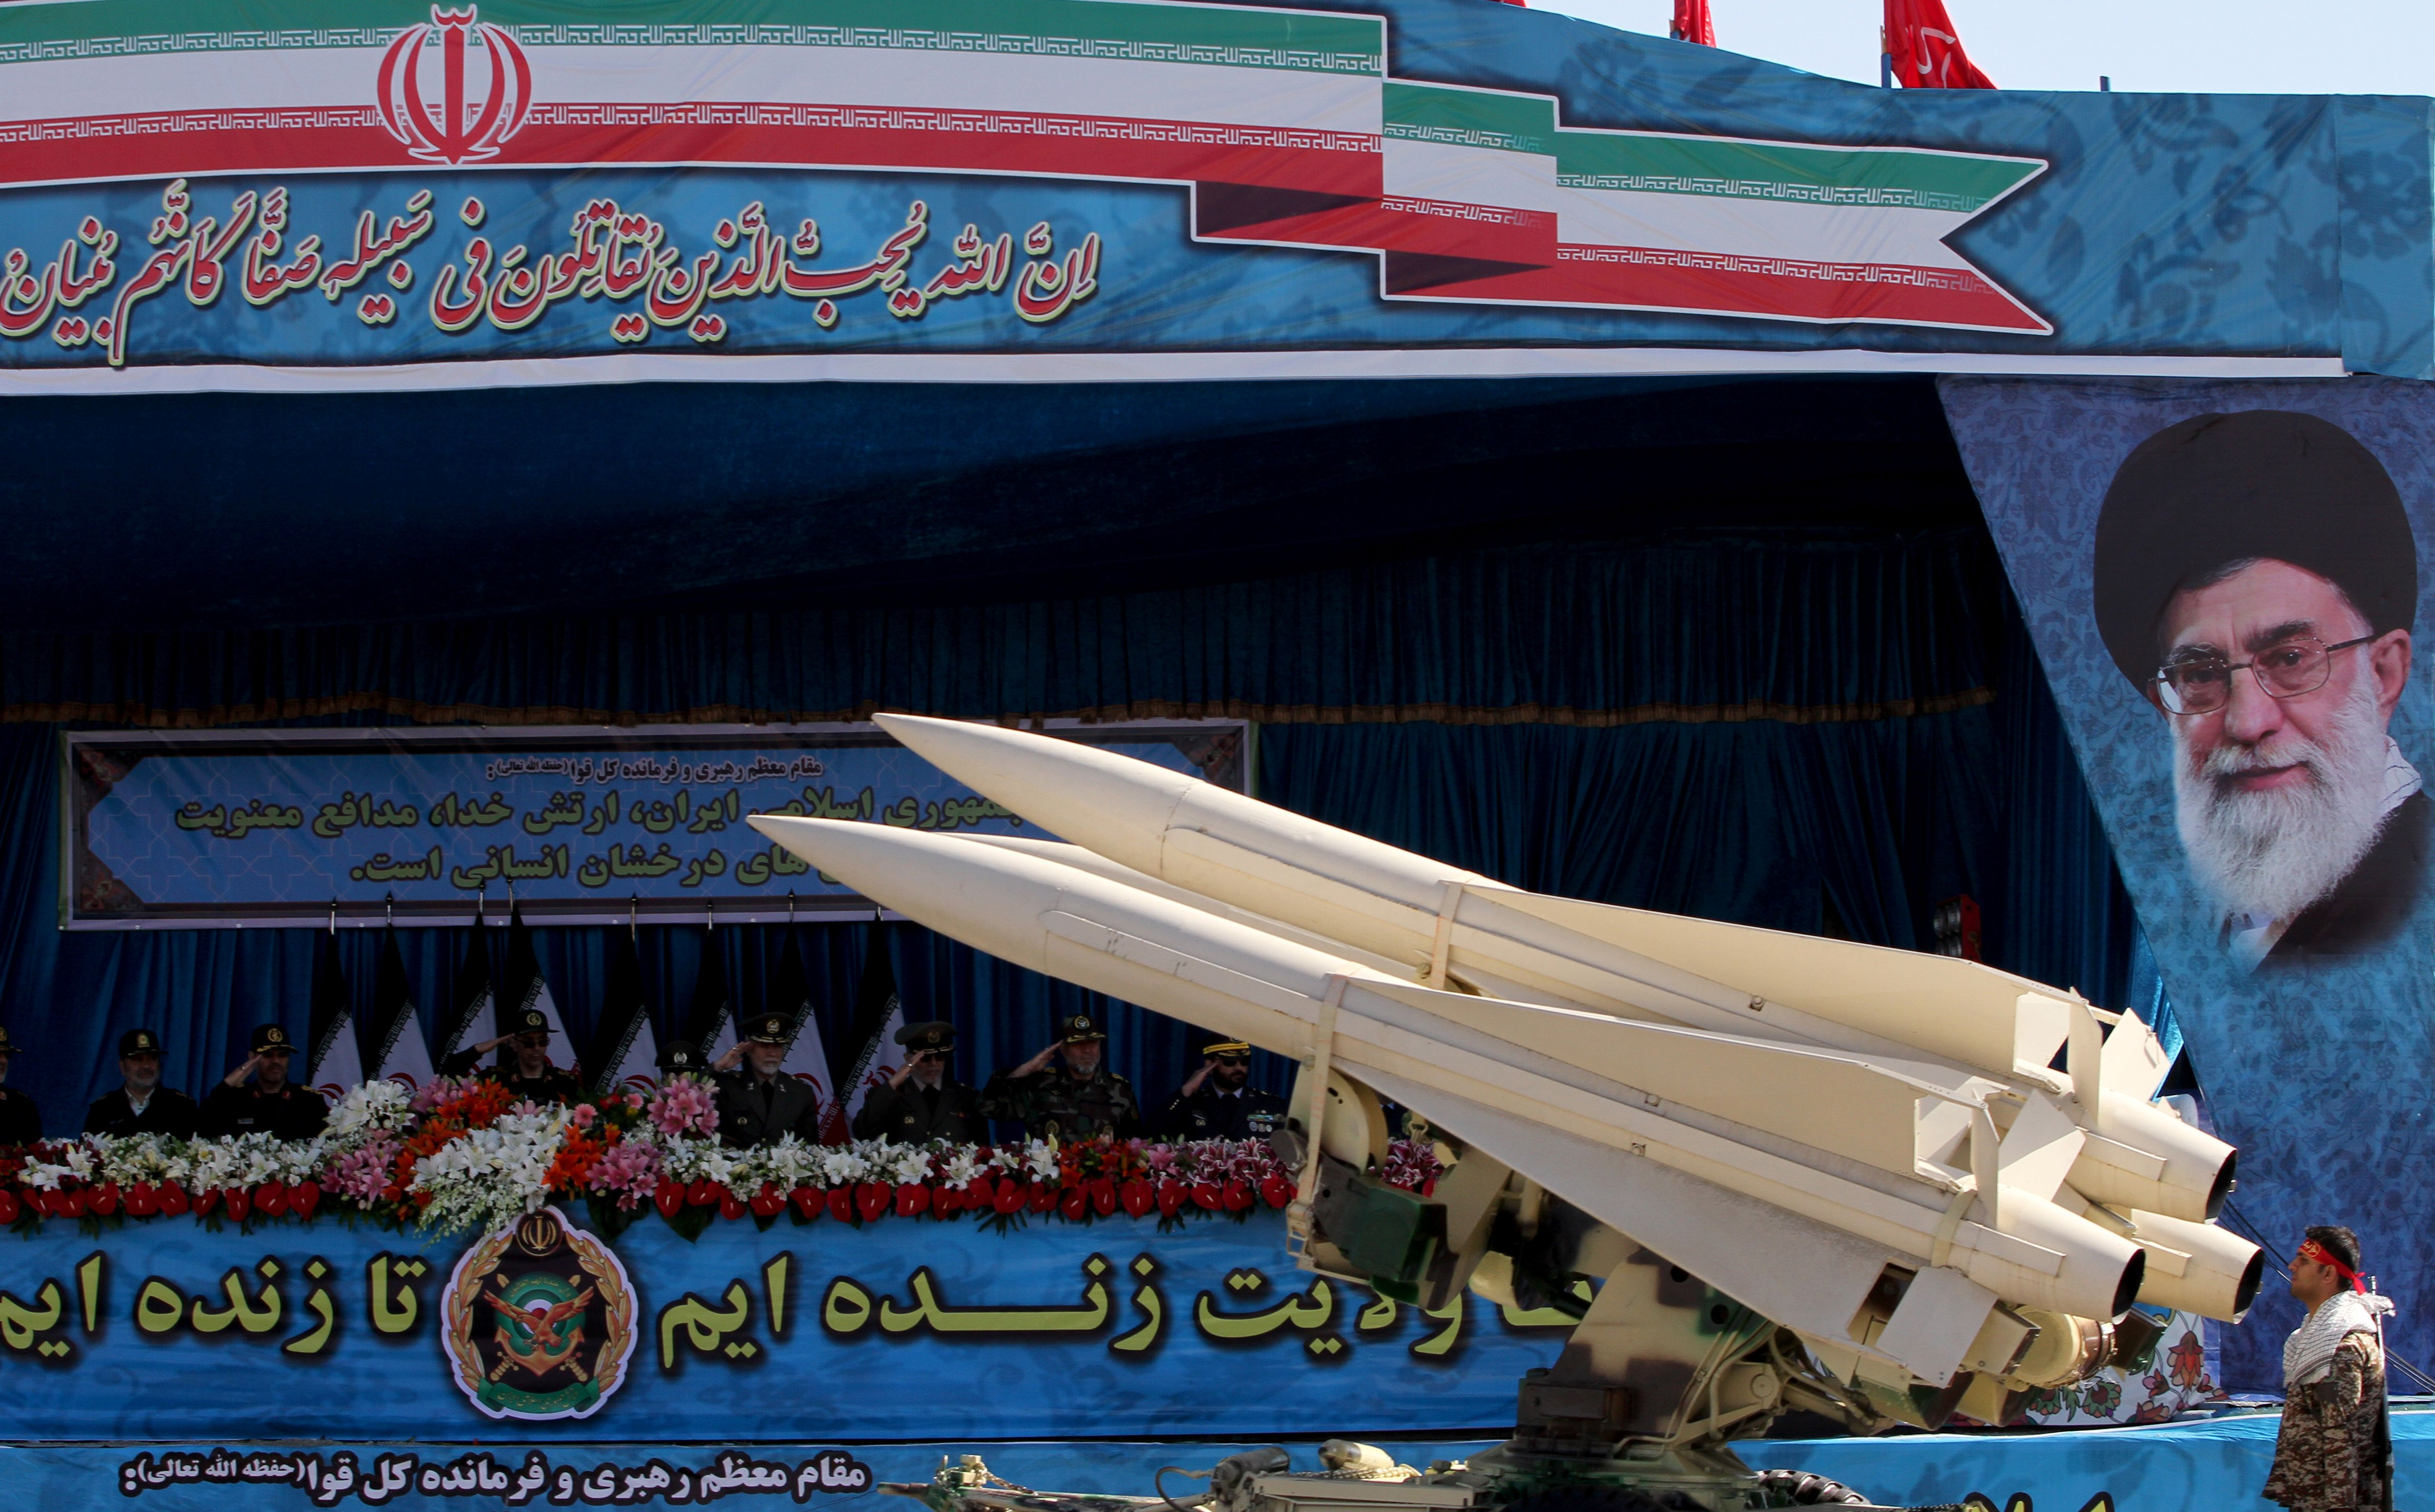 An Iranian military truck carries a US-made Hawk air-defense missile system during a parade on the occasion of the country's Army Day on April 18, 2017 in Tehran.